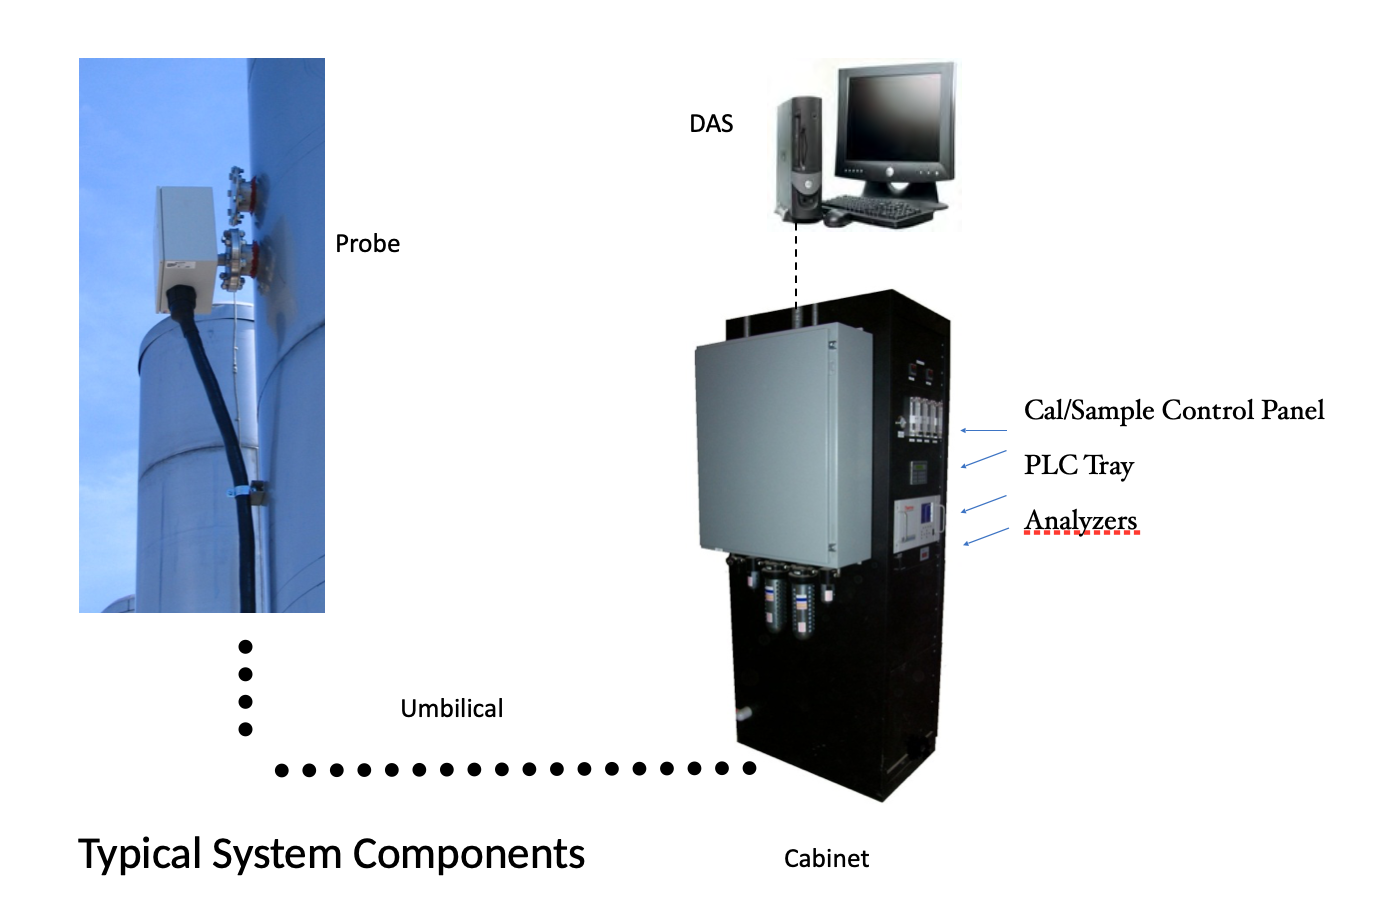 CEMS system components